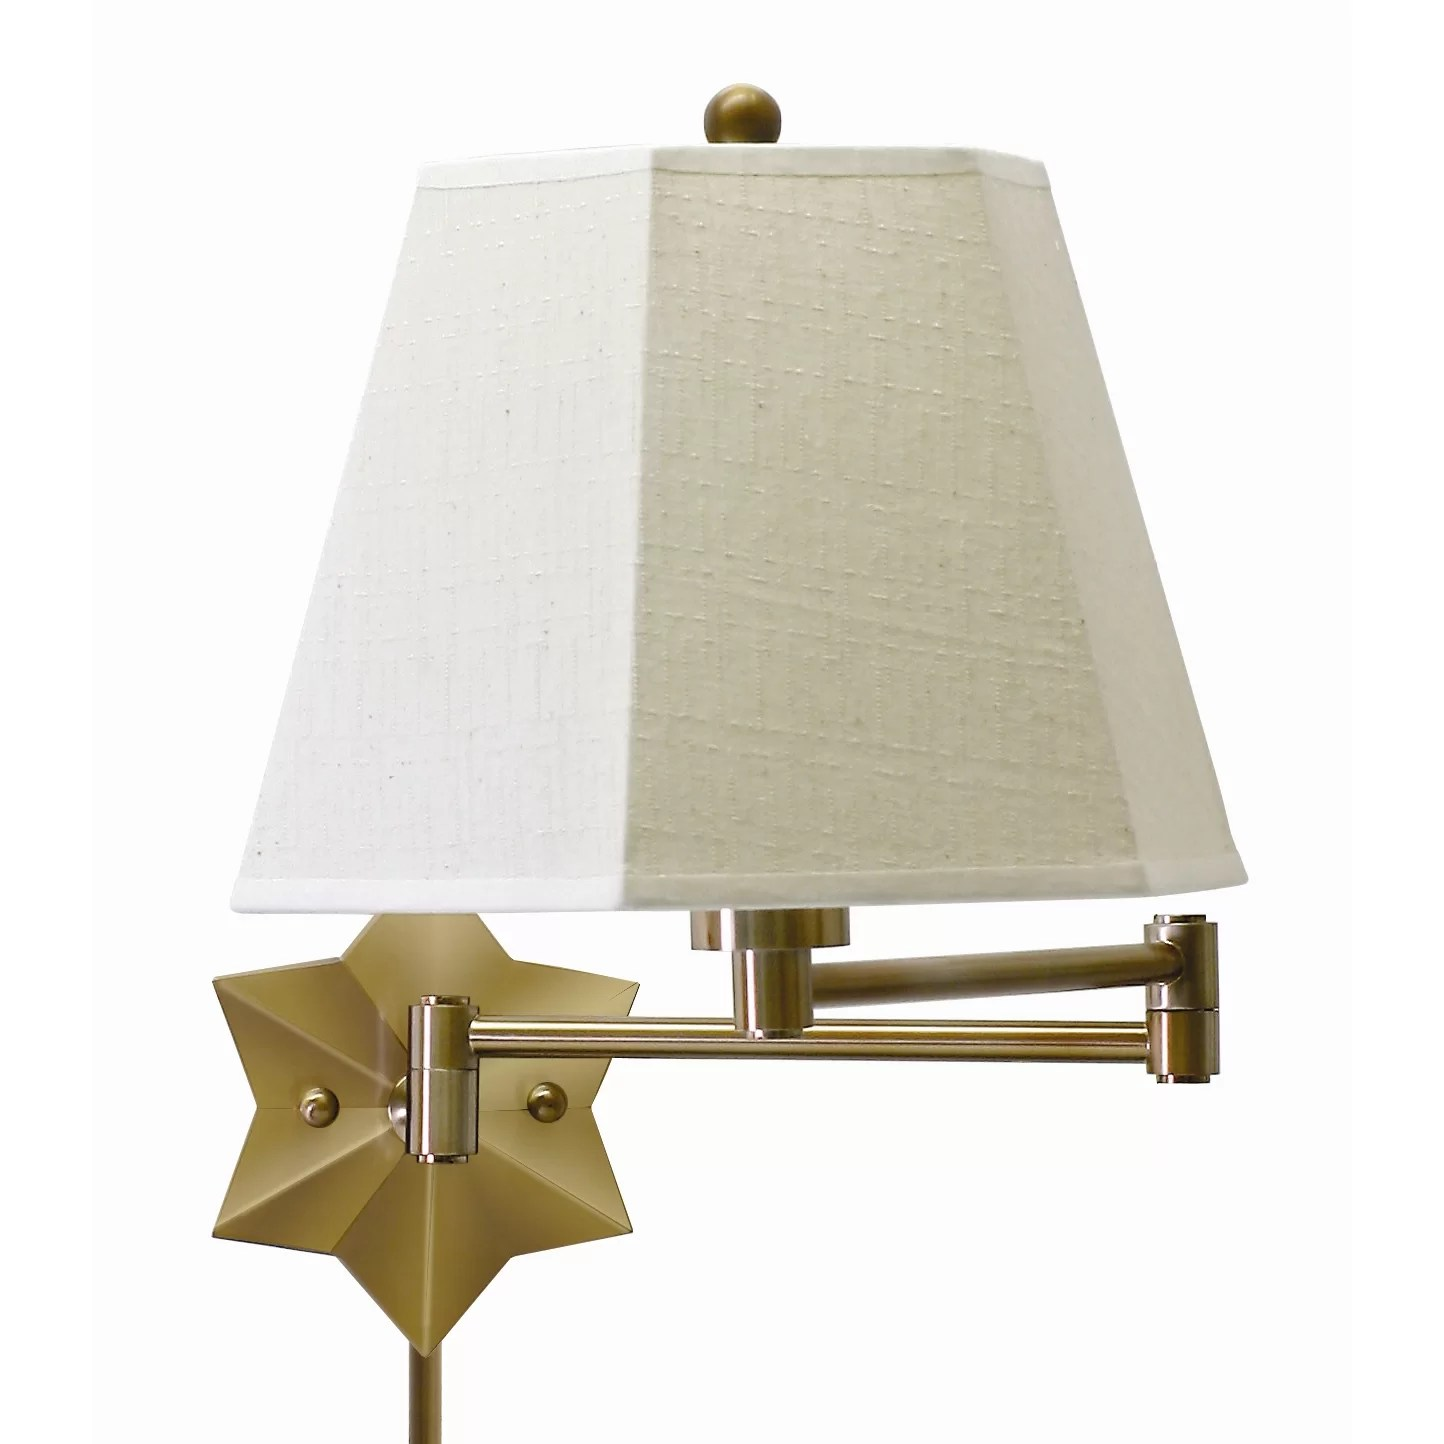 Wall Swing Arm Light House Of Troy Swing Arm Wall Lamp And Reviews Wayfair